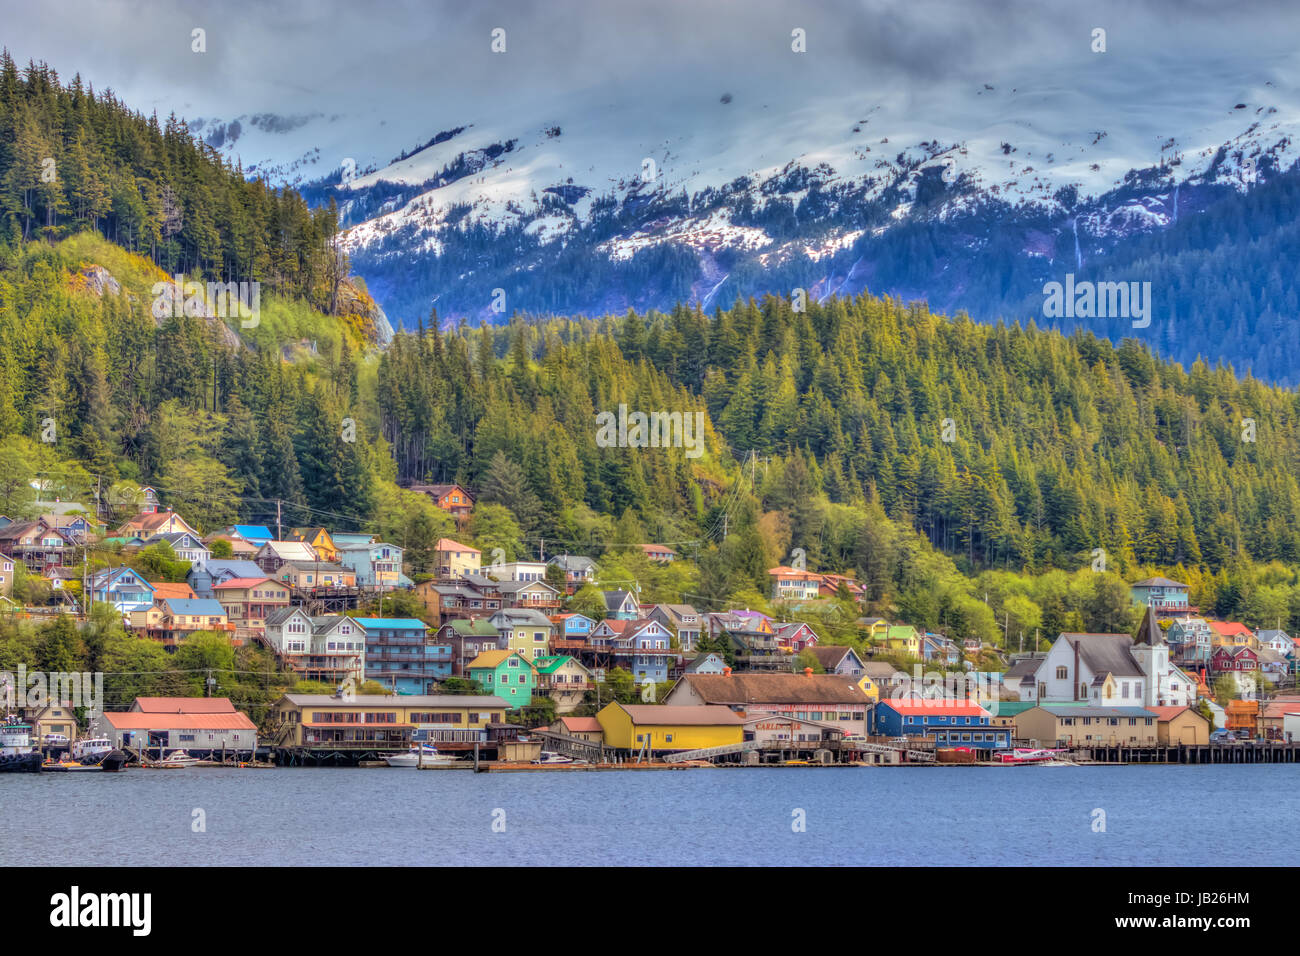 Colorful buildings in the cruise ship port of Ketchikan, Alaska, USA. - Stock Image